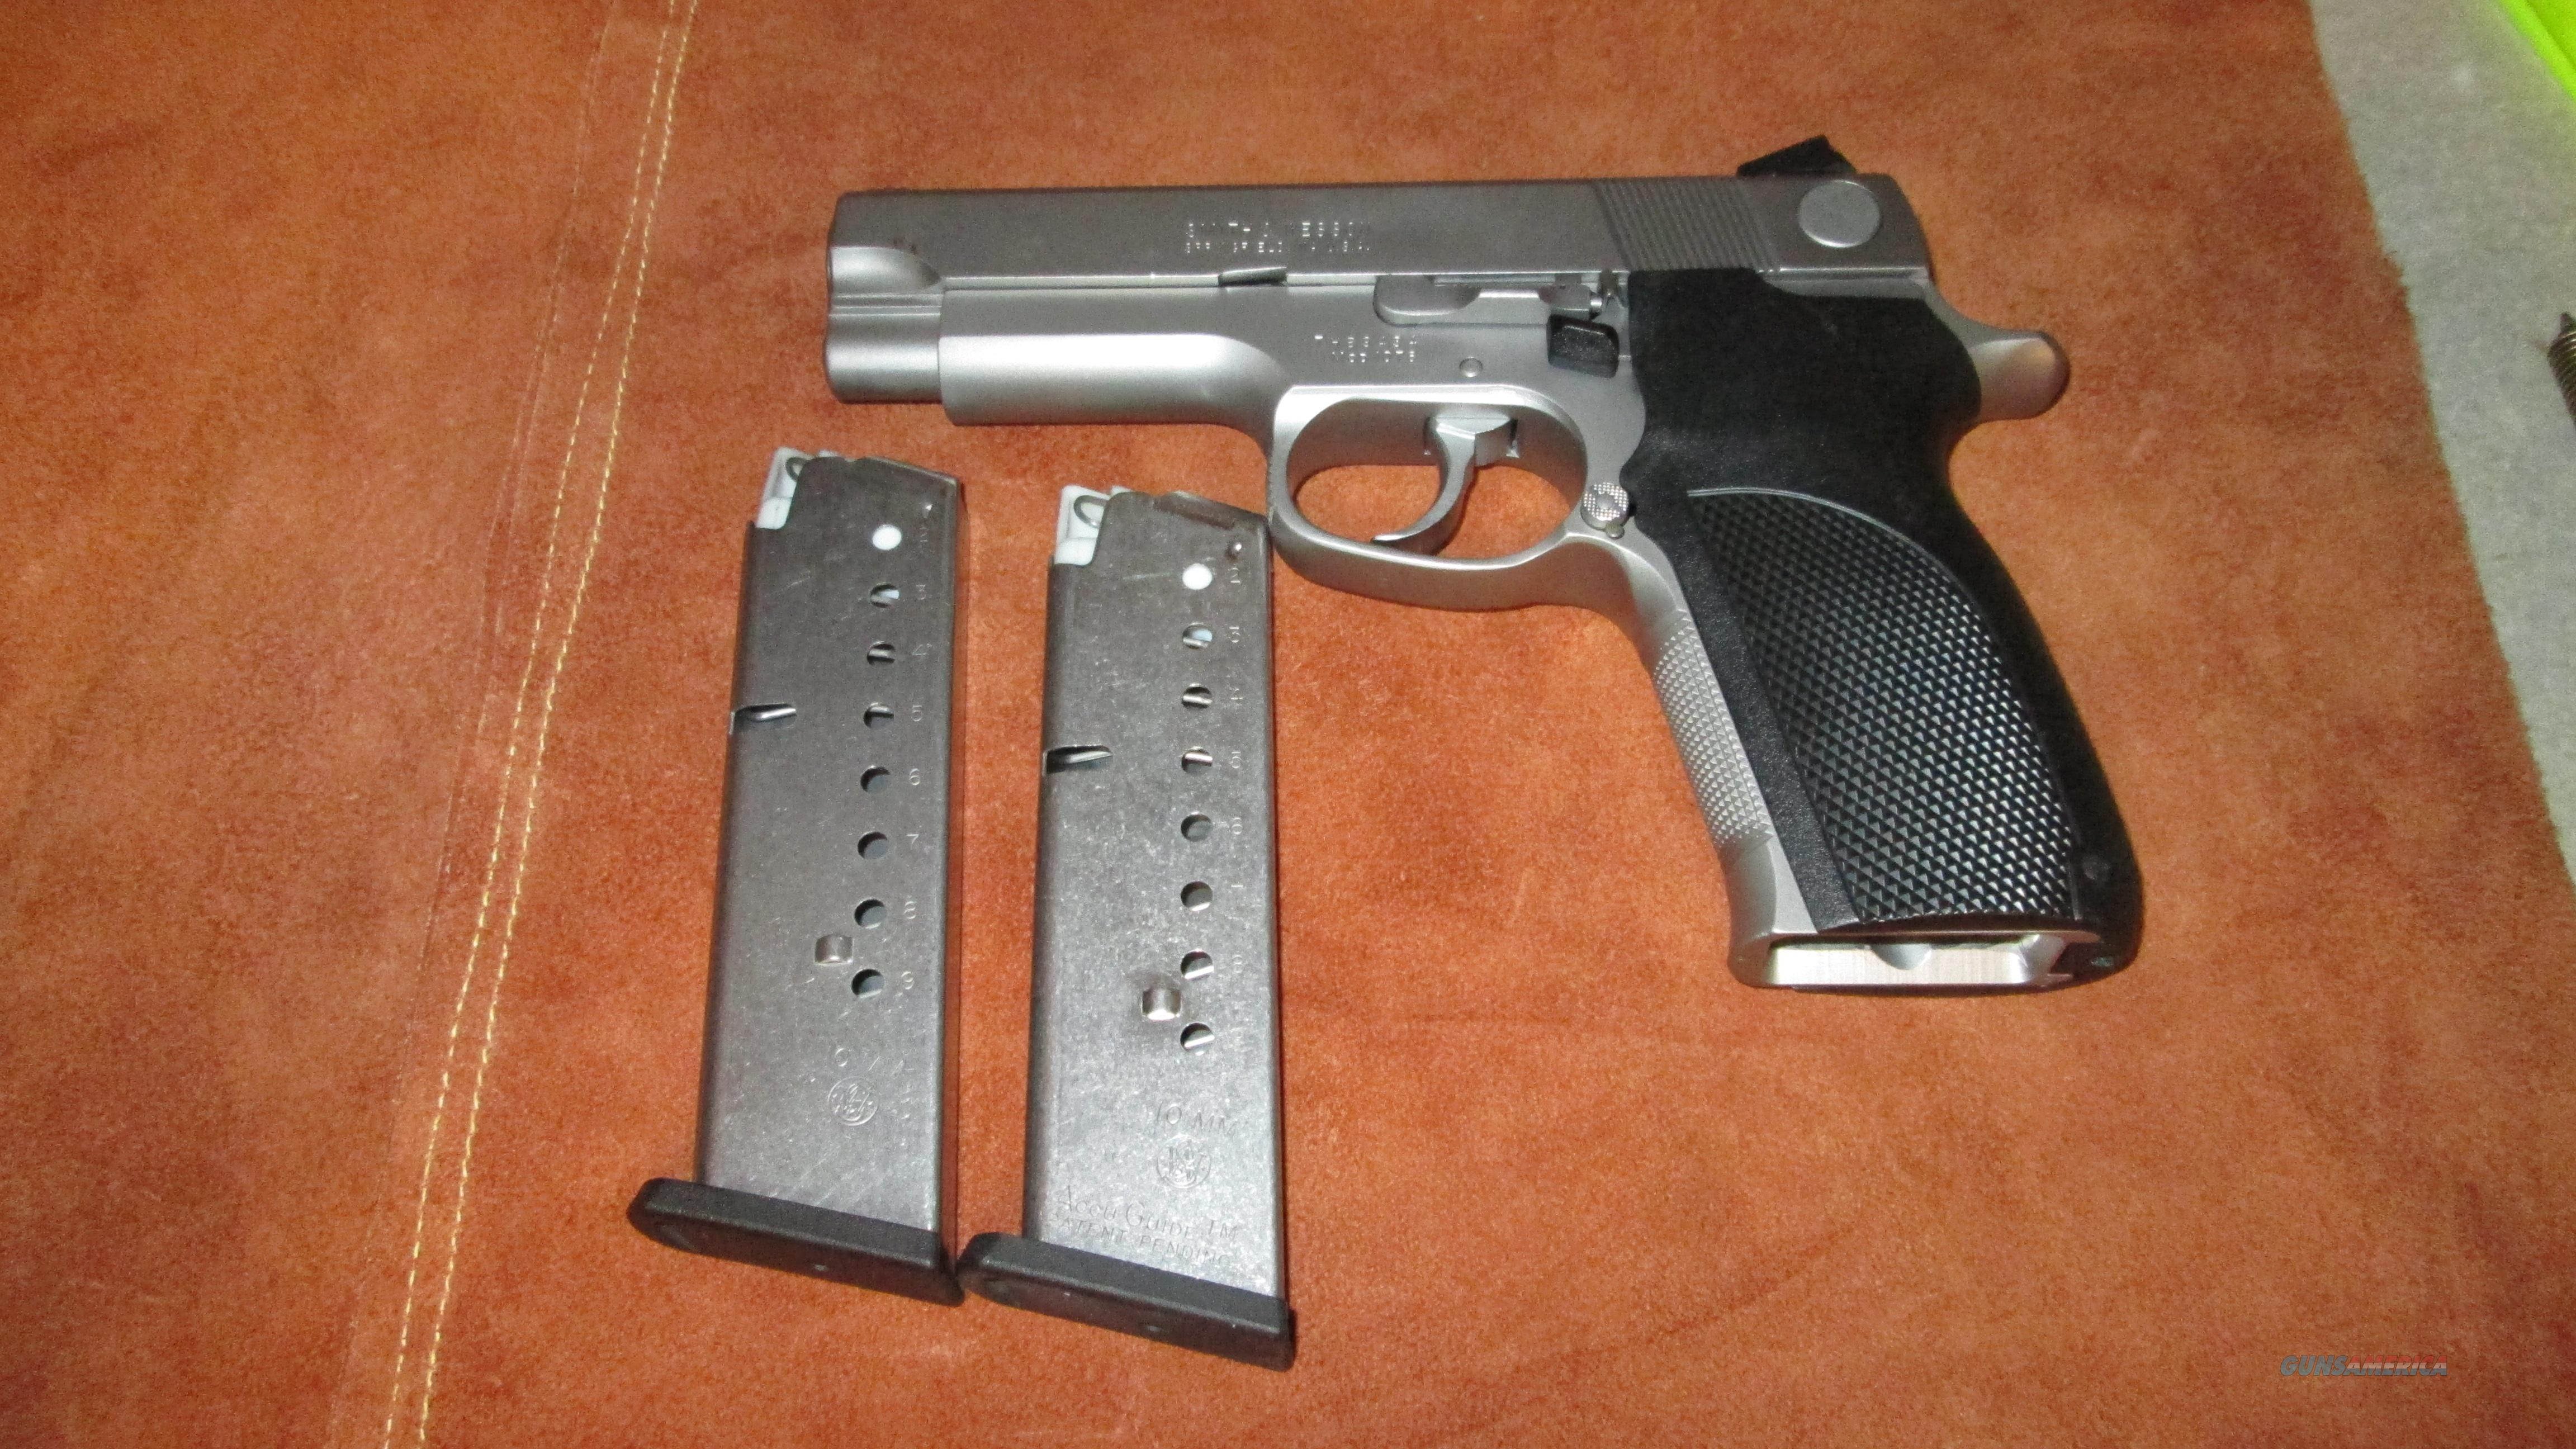 RARE Smith & Wesson (S&W) 1076 10MM 2 Mags VERY NICE  Guns > Pistols > Smith & Wesson Pistols - Autos > Steel Frame